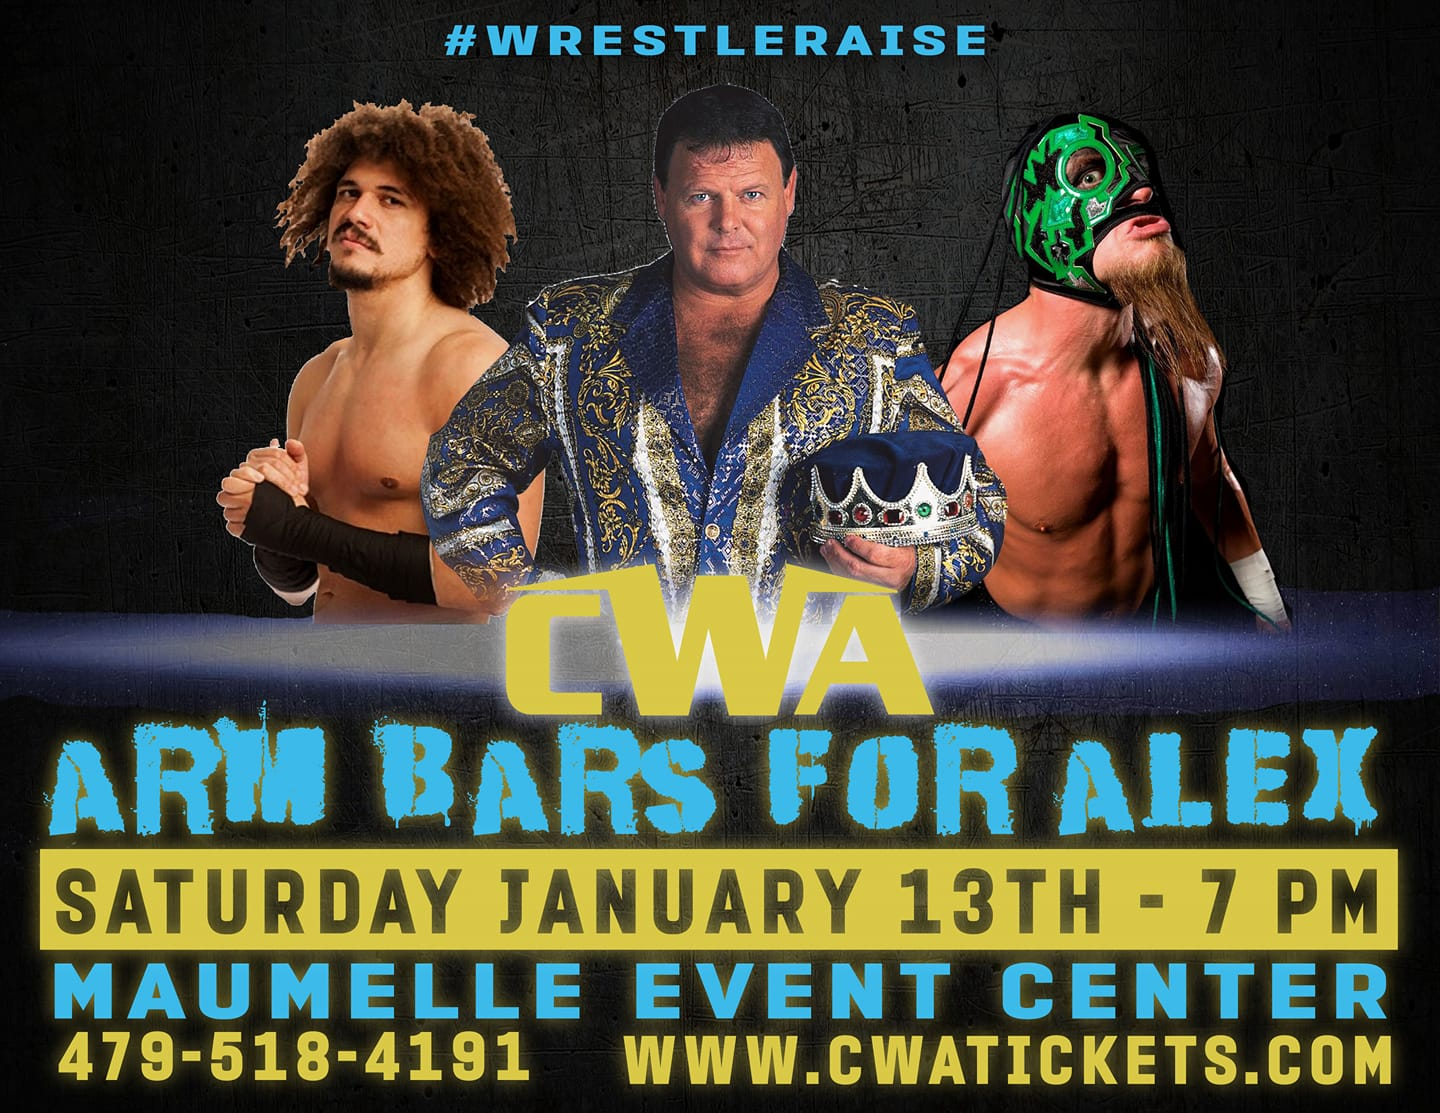 Wrestling Fundraiser For Local Boy Jan 13 Features Jerry Lawler